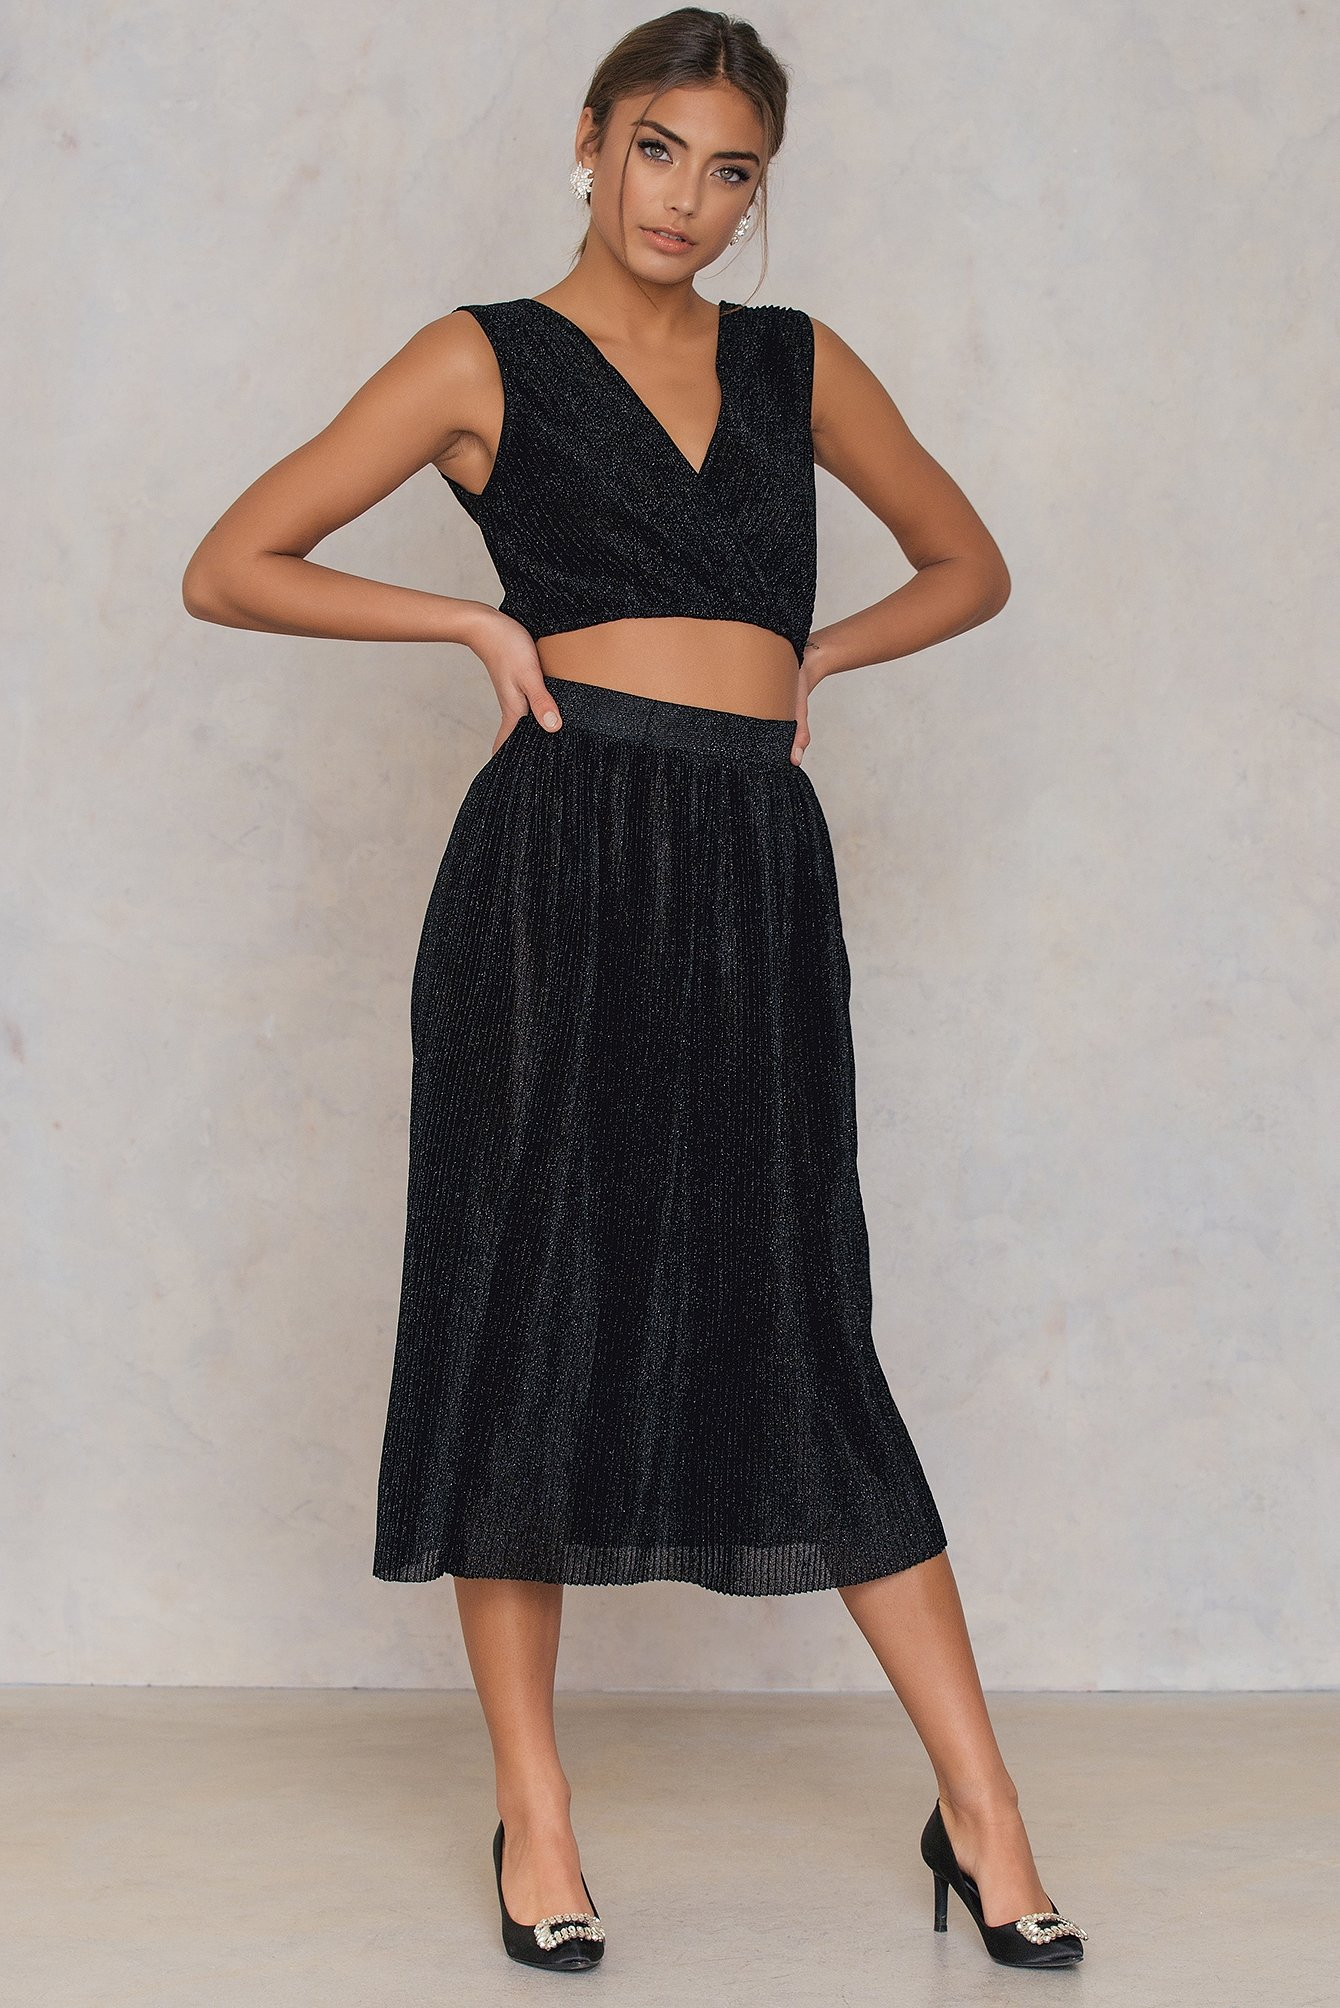 NA-KD Party Pleated Glittery Skirt - Black